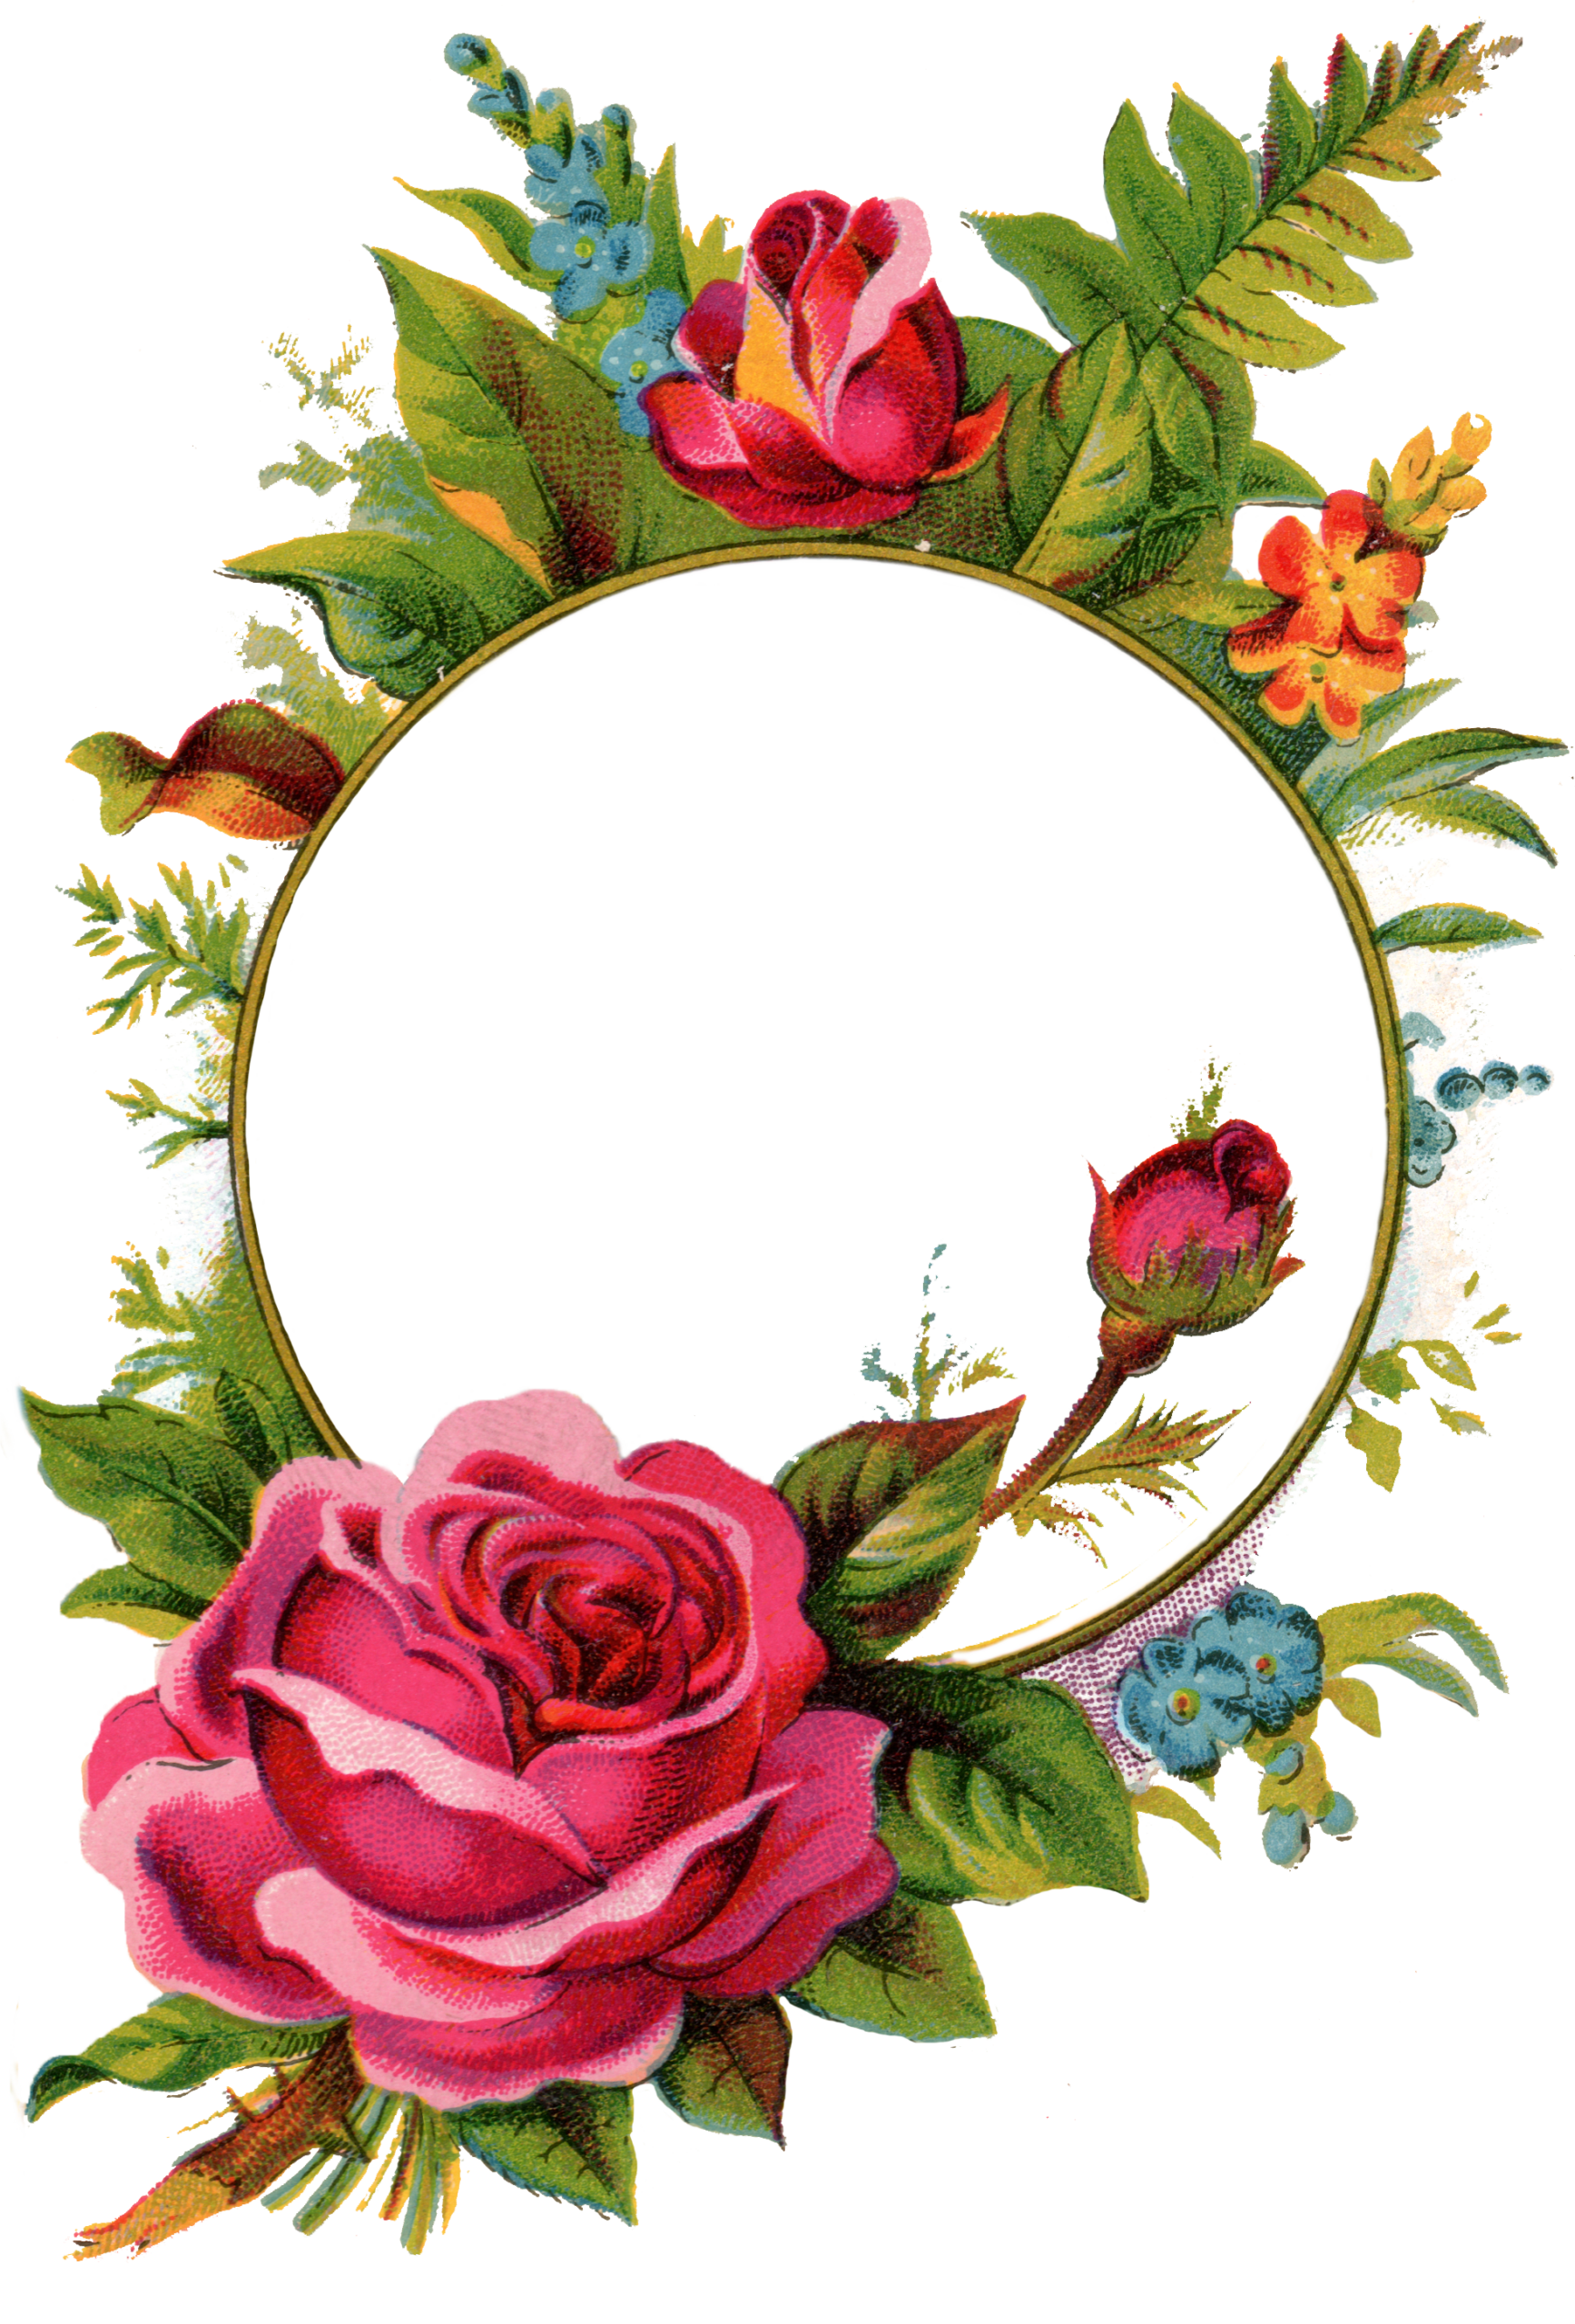 Free Stock Images Rose Frame Free Pretty Things For You